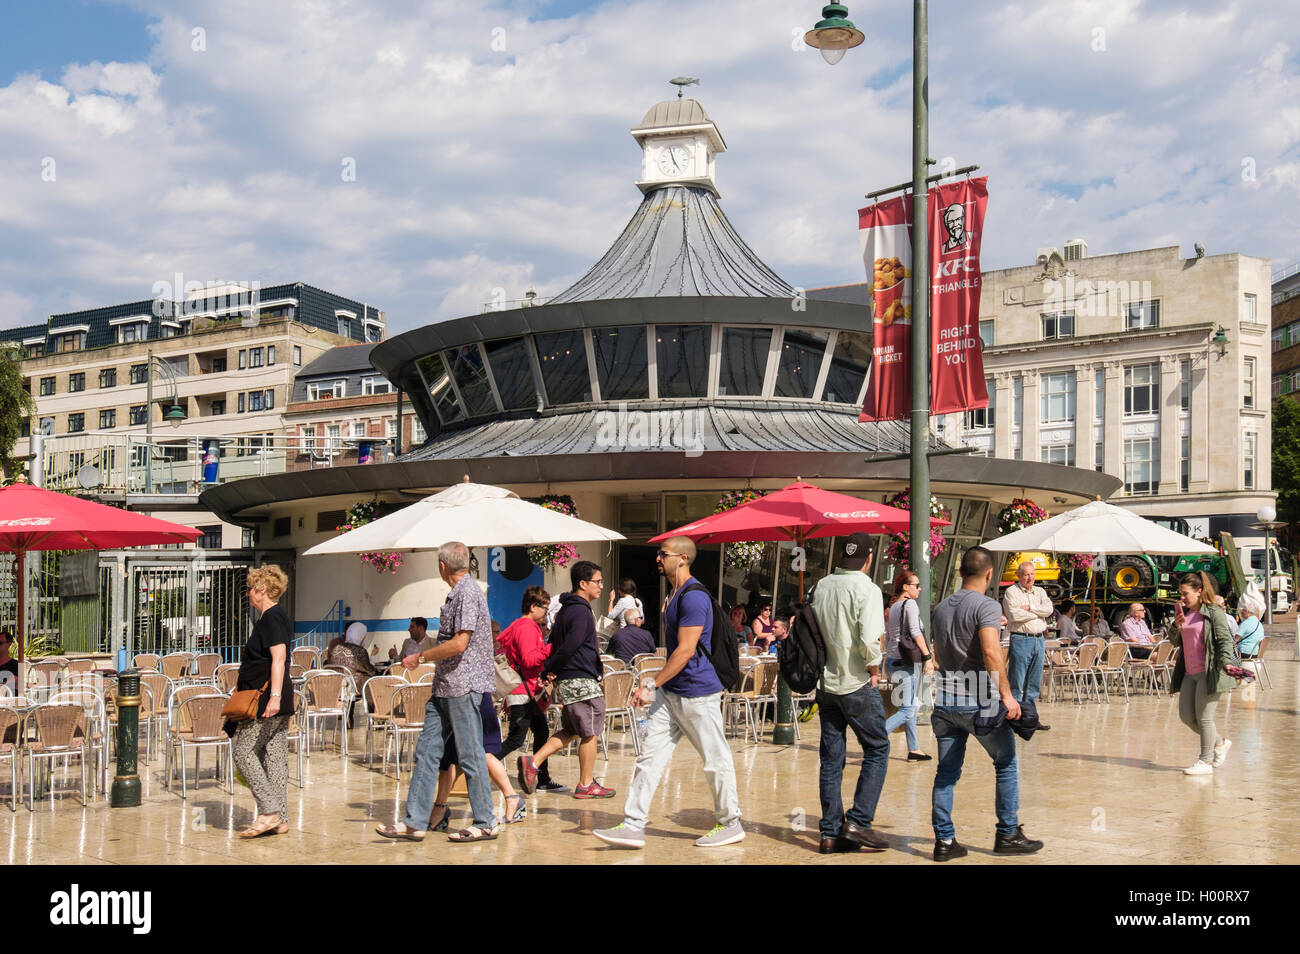 Busy street scene outside with people rushing past The Obscura Cafe in The Square, Bournemouth, Dorset, England, Stock Photo